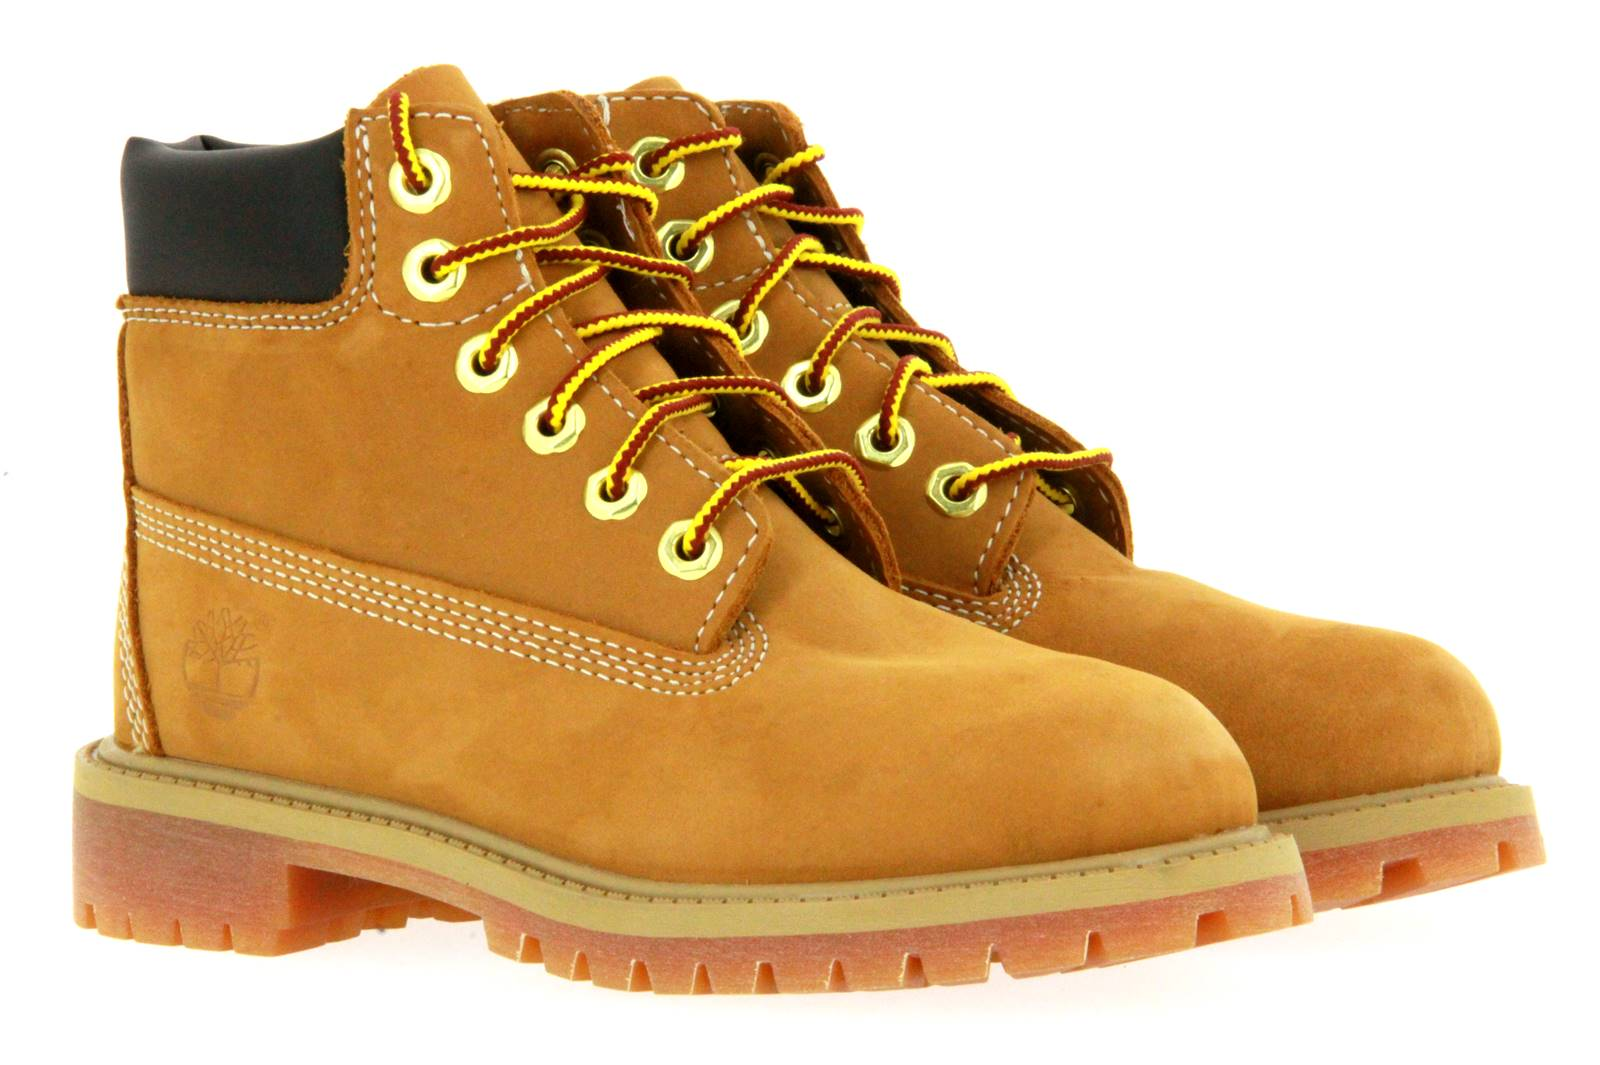 Timberland boots JUNIOR 6 INCH PREMIUM WHEAT NUBUK YELLOW